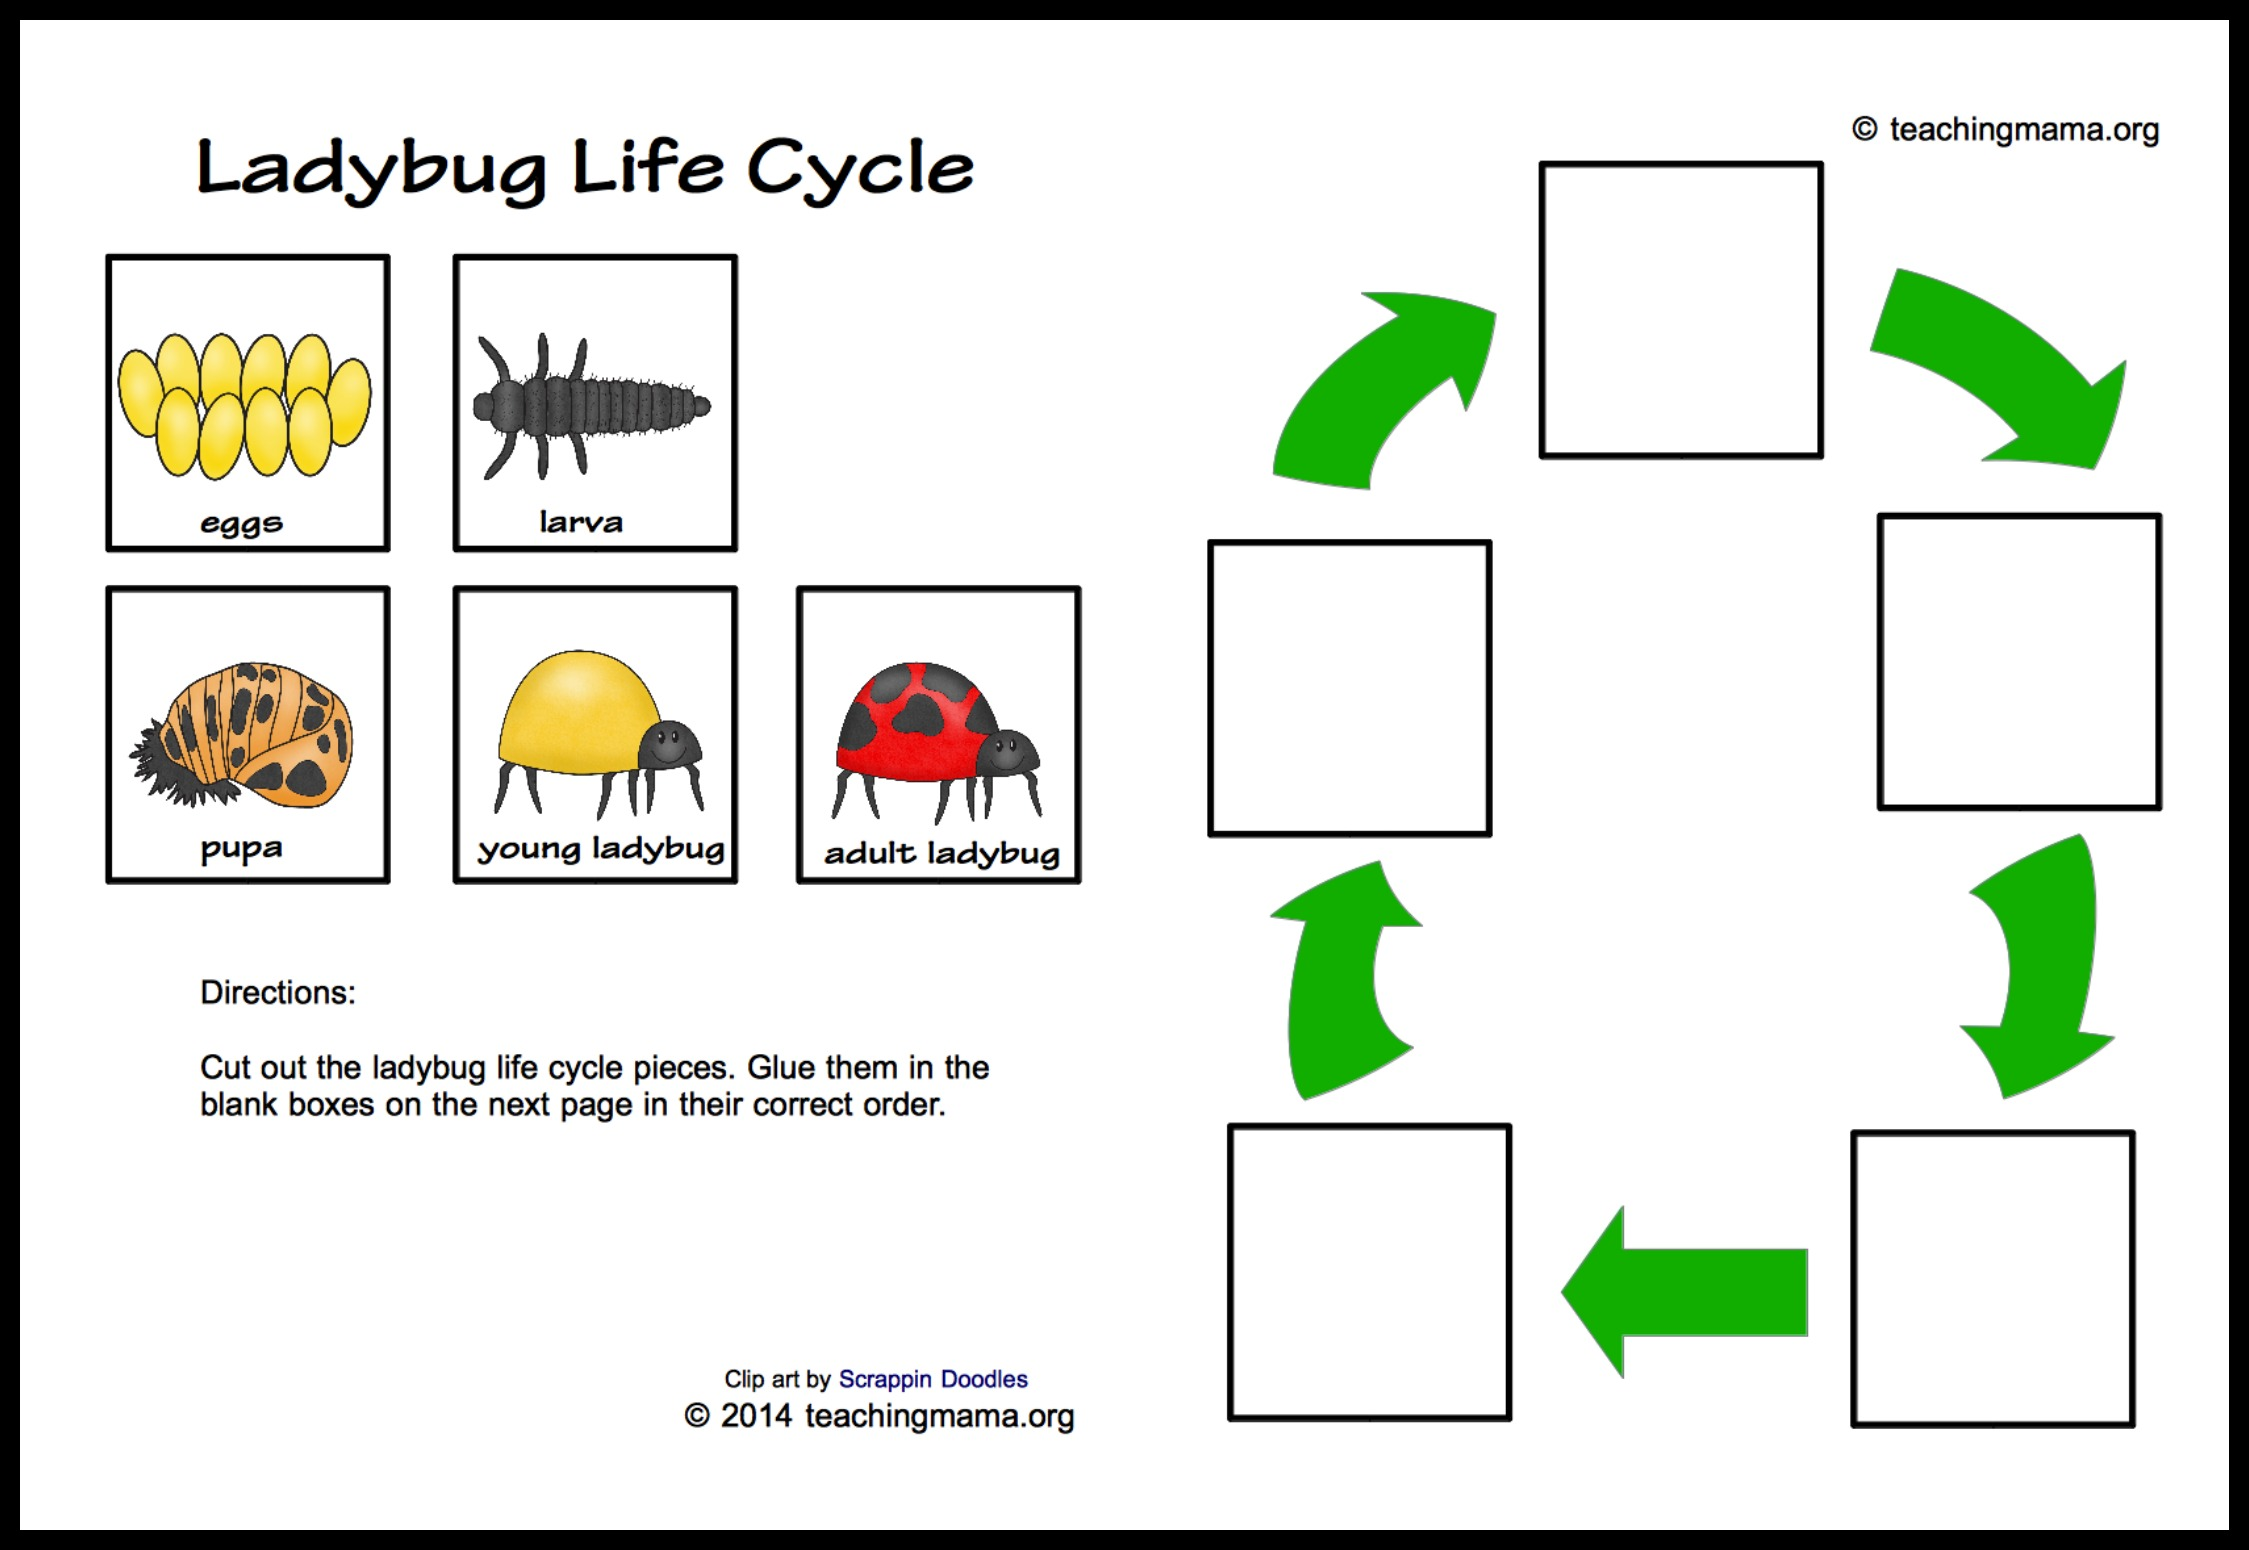 Cp Xzoce furthermore B D B Fe Fbc Bdeca Ec Fb as well Lifecyclecollage X also Insect Bfirst Bletter Bsound Bclip Bcards Bfree Blabel also Printable Bug Pin. on ladybug life cycle printables 2